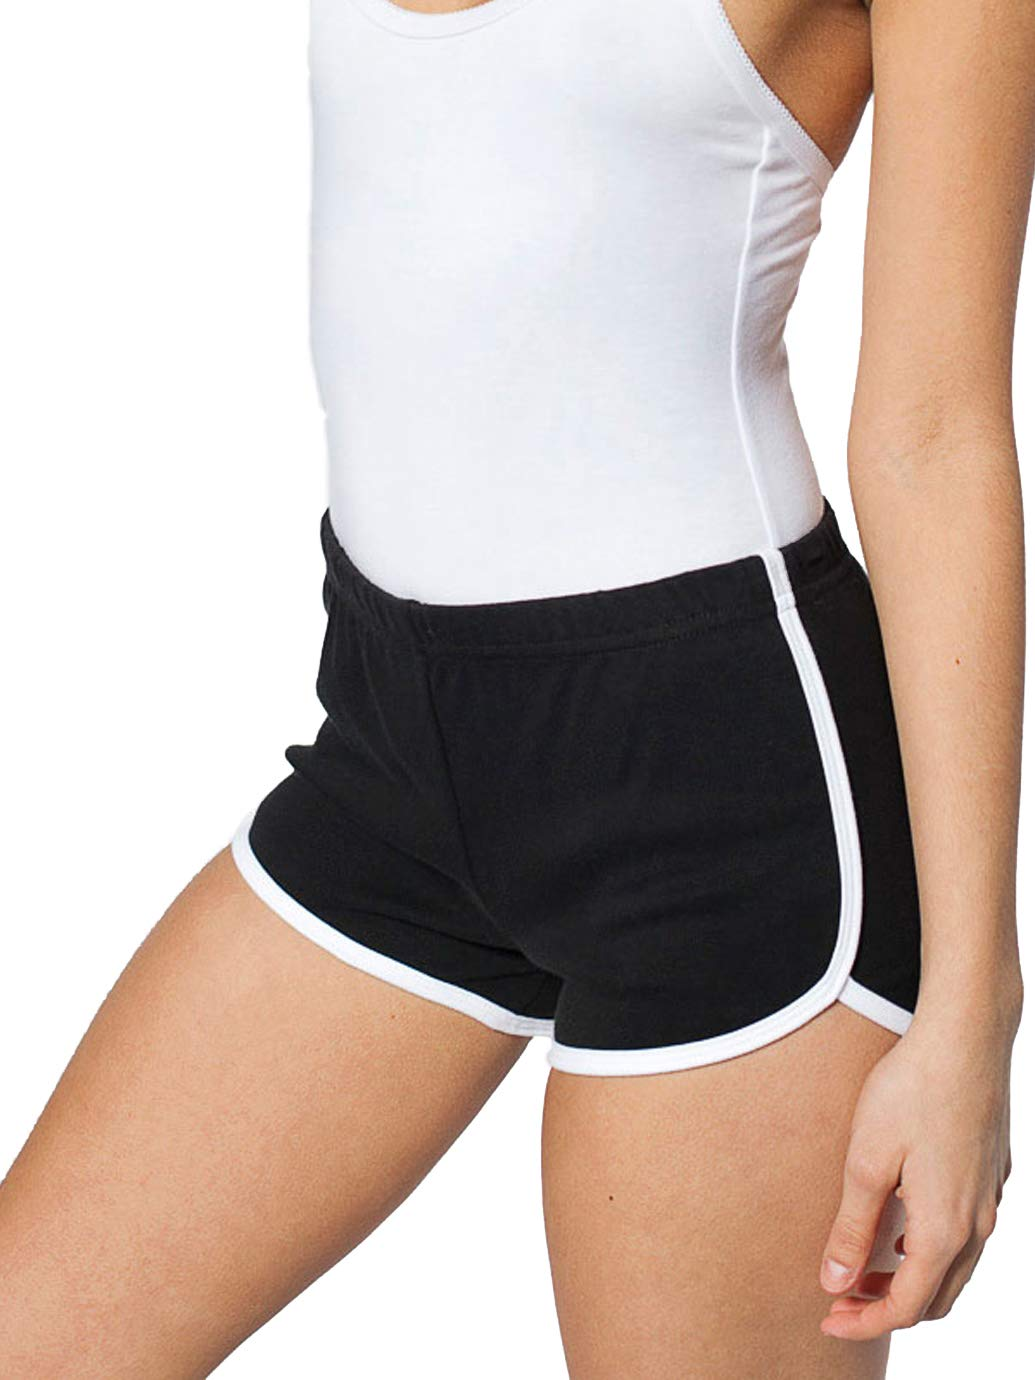 ALLUSIVE Women's Striped Athletic Shorts, Inspiration Vintage 80s Style Running Shorts Women, Classic Style Modern Comfort, Sexy Single Stripe Gym Workout Shorts (X-Large, Black/White)